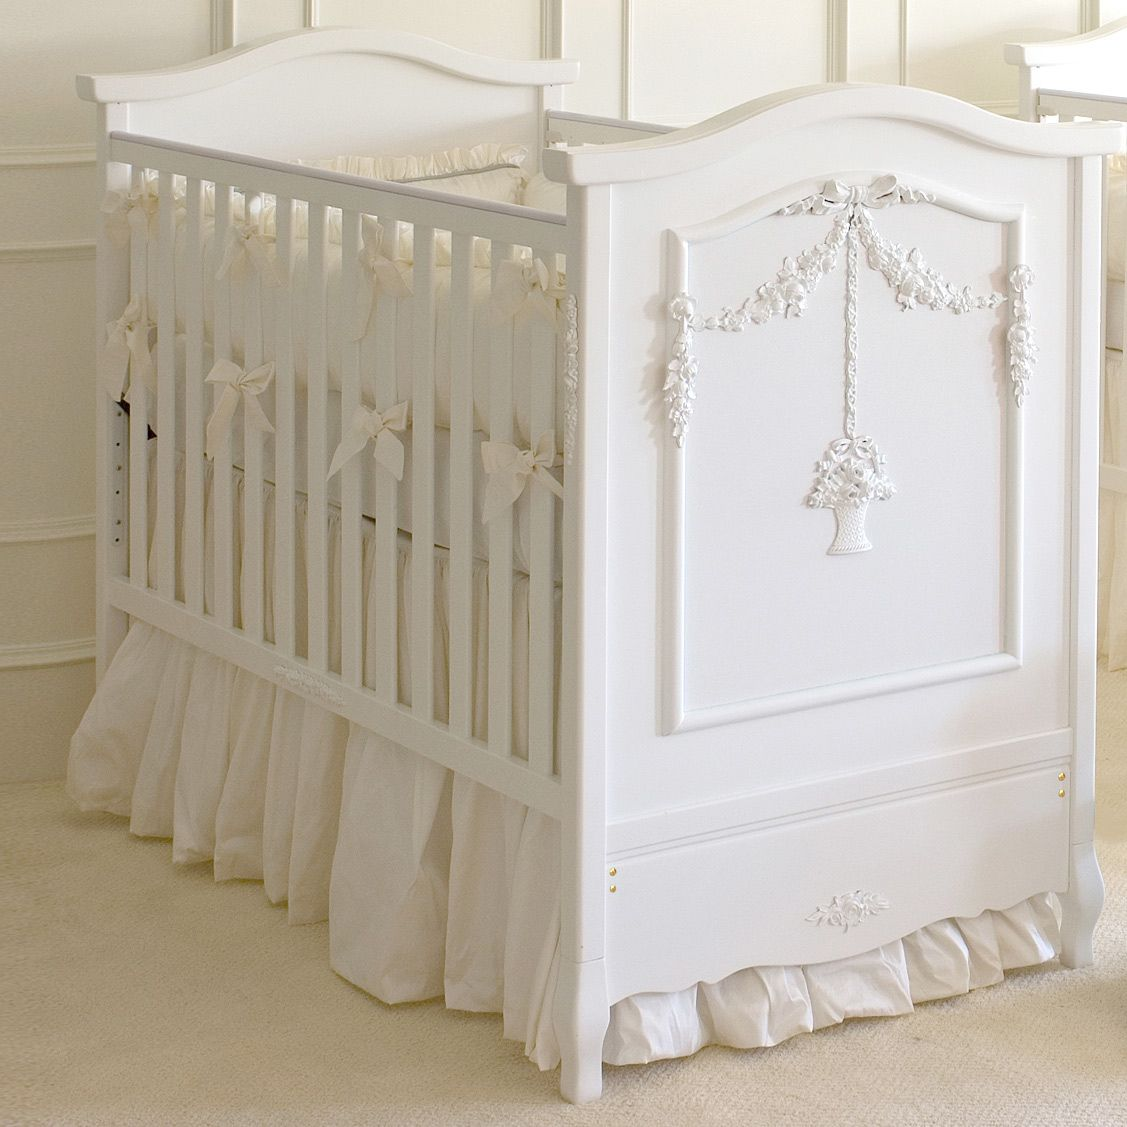 30 French Baby Furniture Bedroom Interior Design Ideas Check